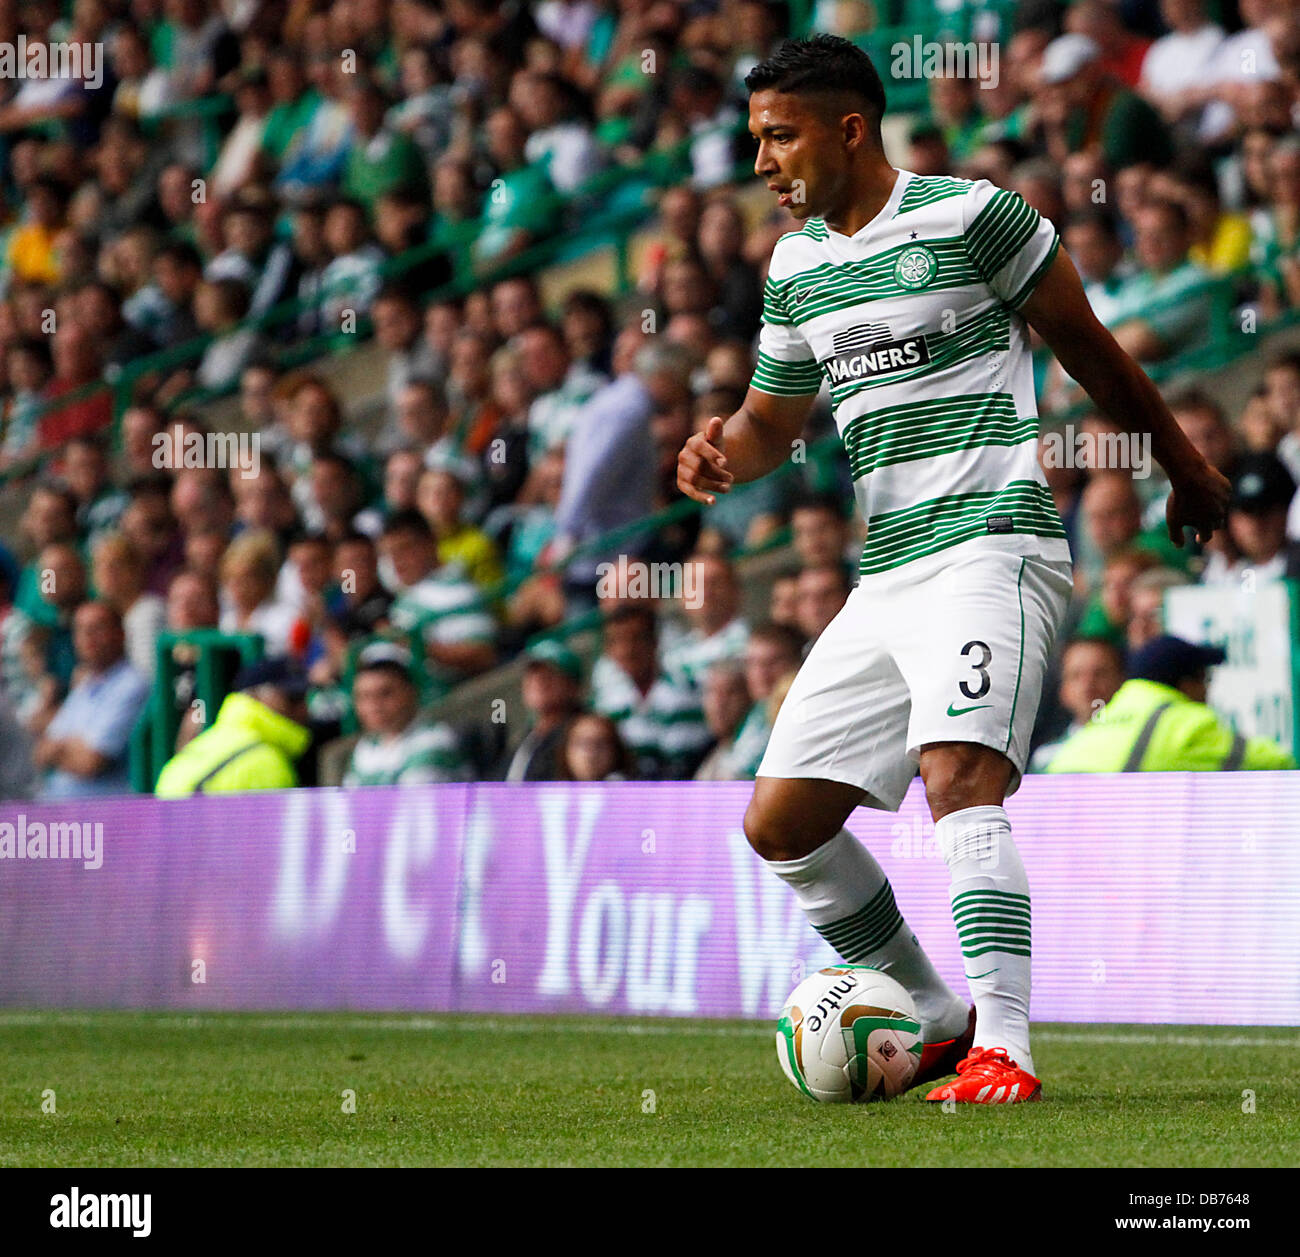 Celtic Park, Glasgow, Scotland. 23rd July, 2013. UEFA Champions League qualification, second leg. Celtic FC versus Stock Photo